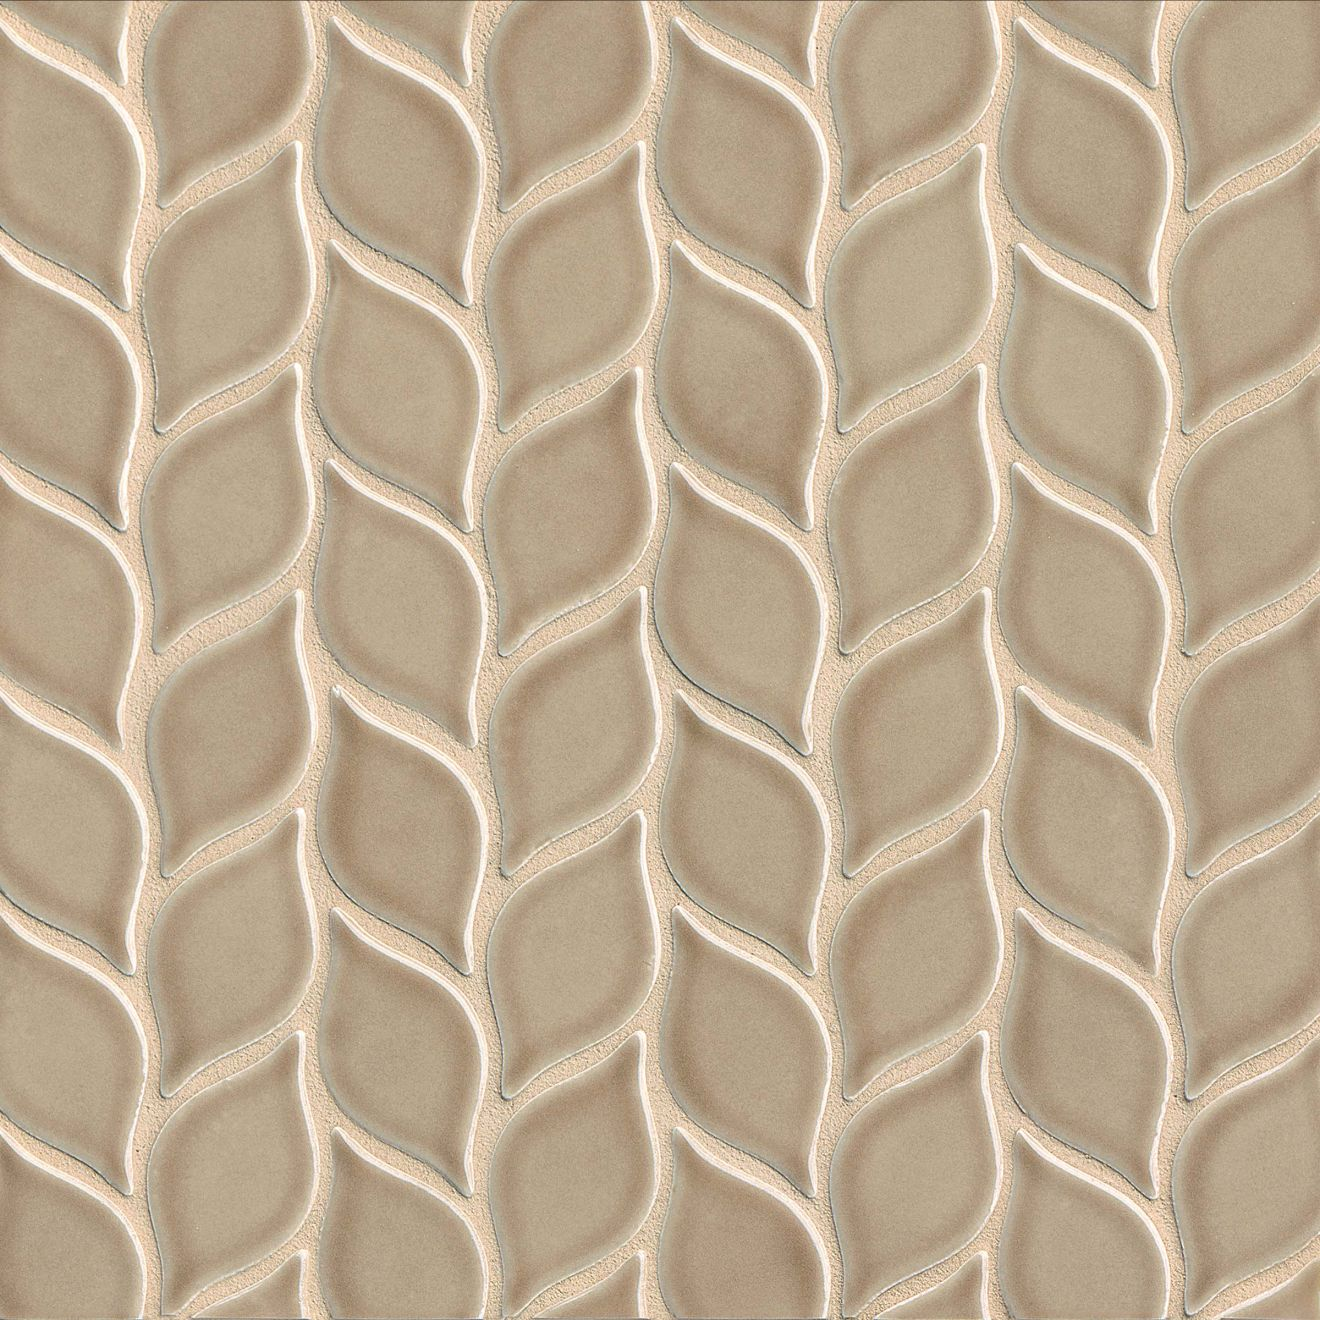 """Provincetown 2-13/16"""" x 1-7/16"""" Floor & Wall Mosaic in Highland Brown"""